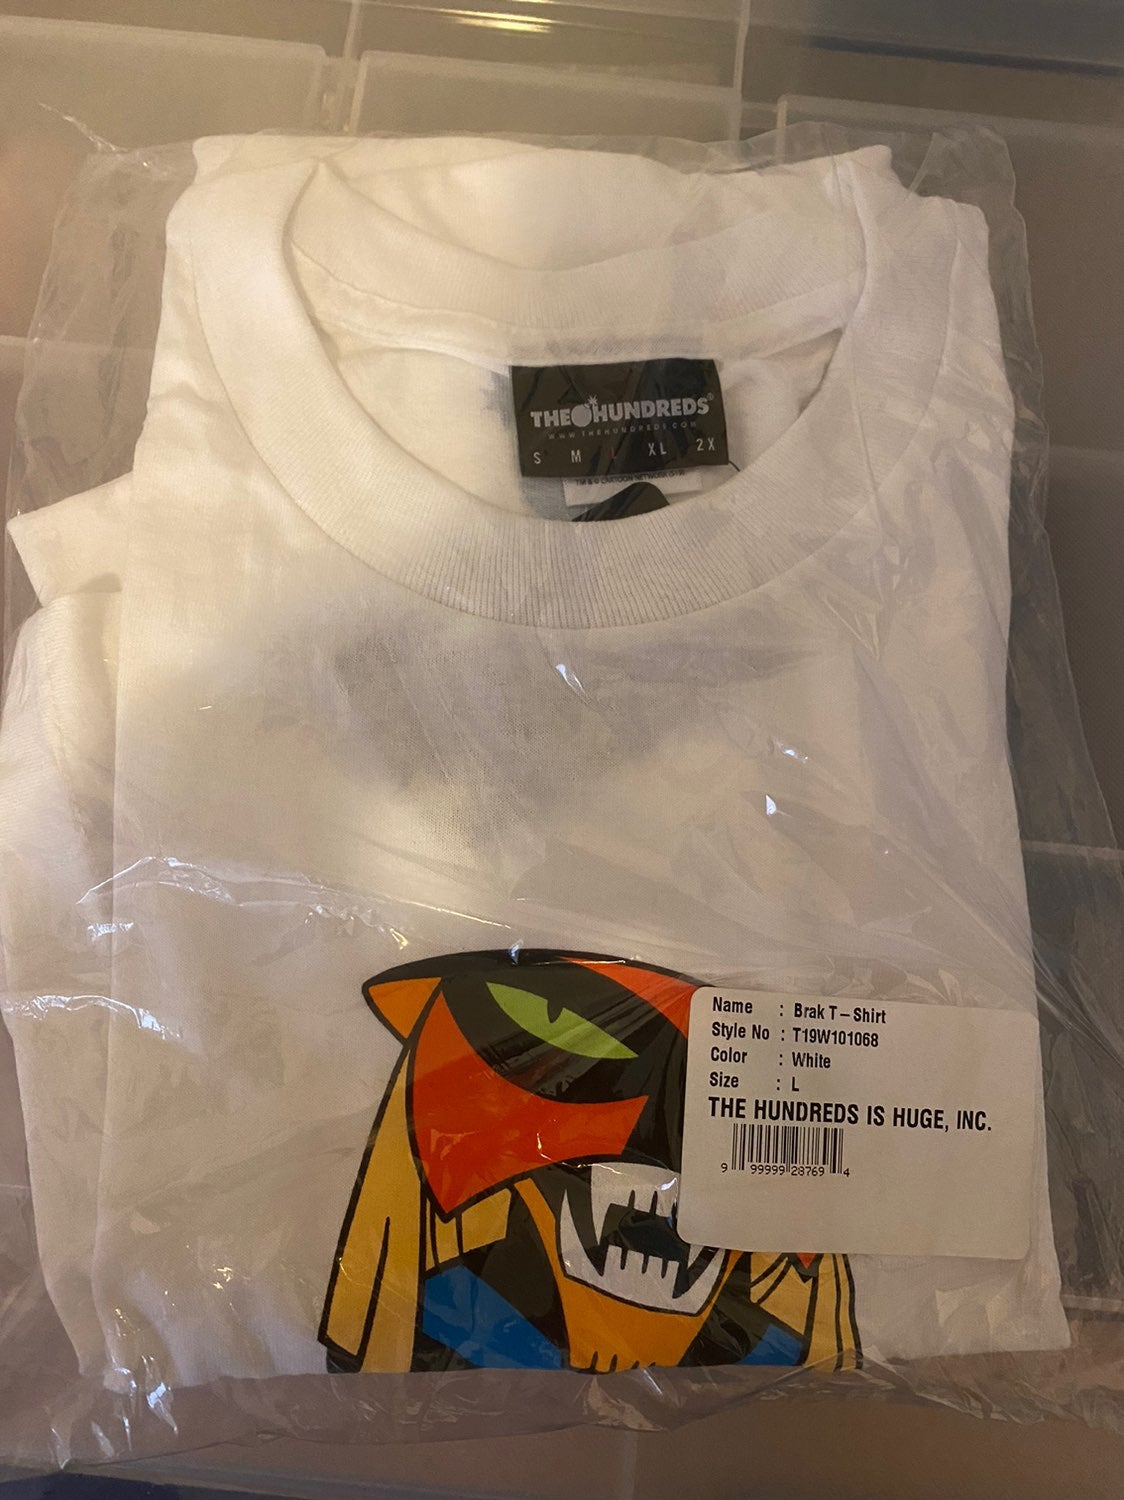 The Hundreds Space Ghost Brak T shirt